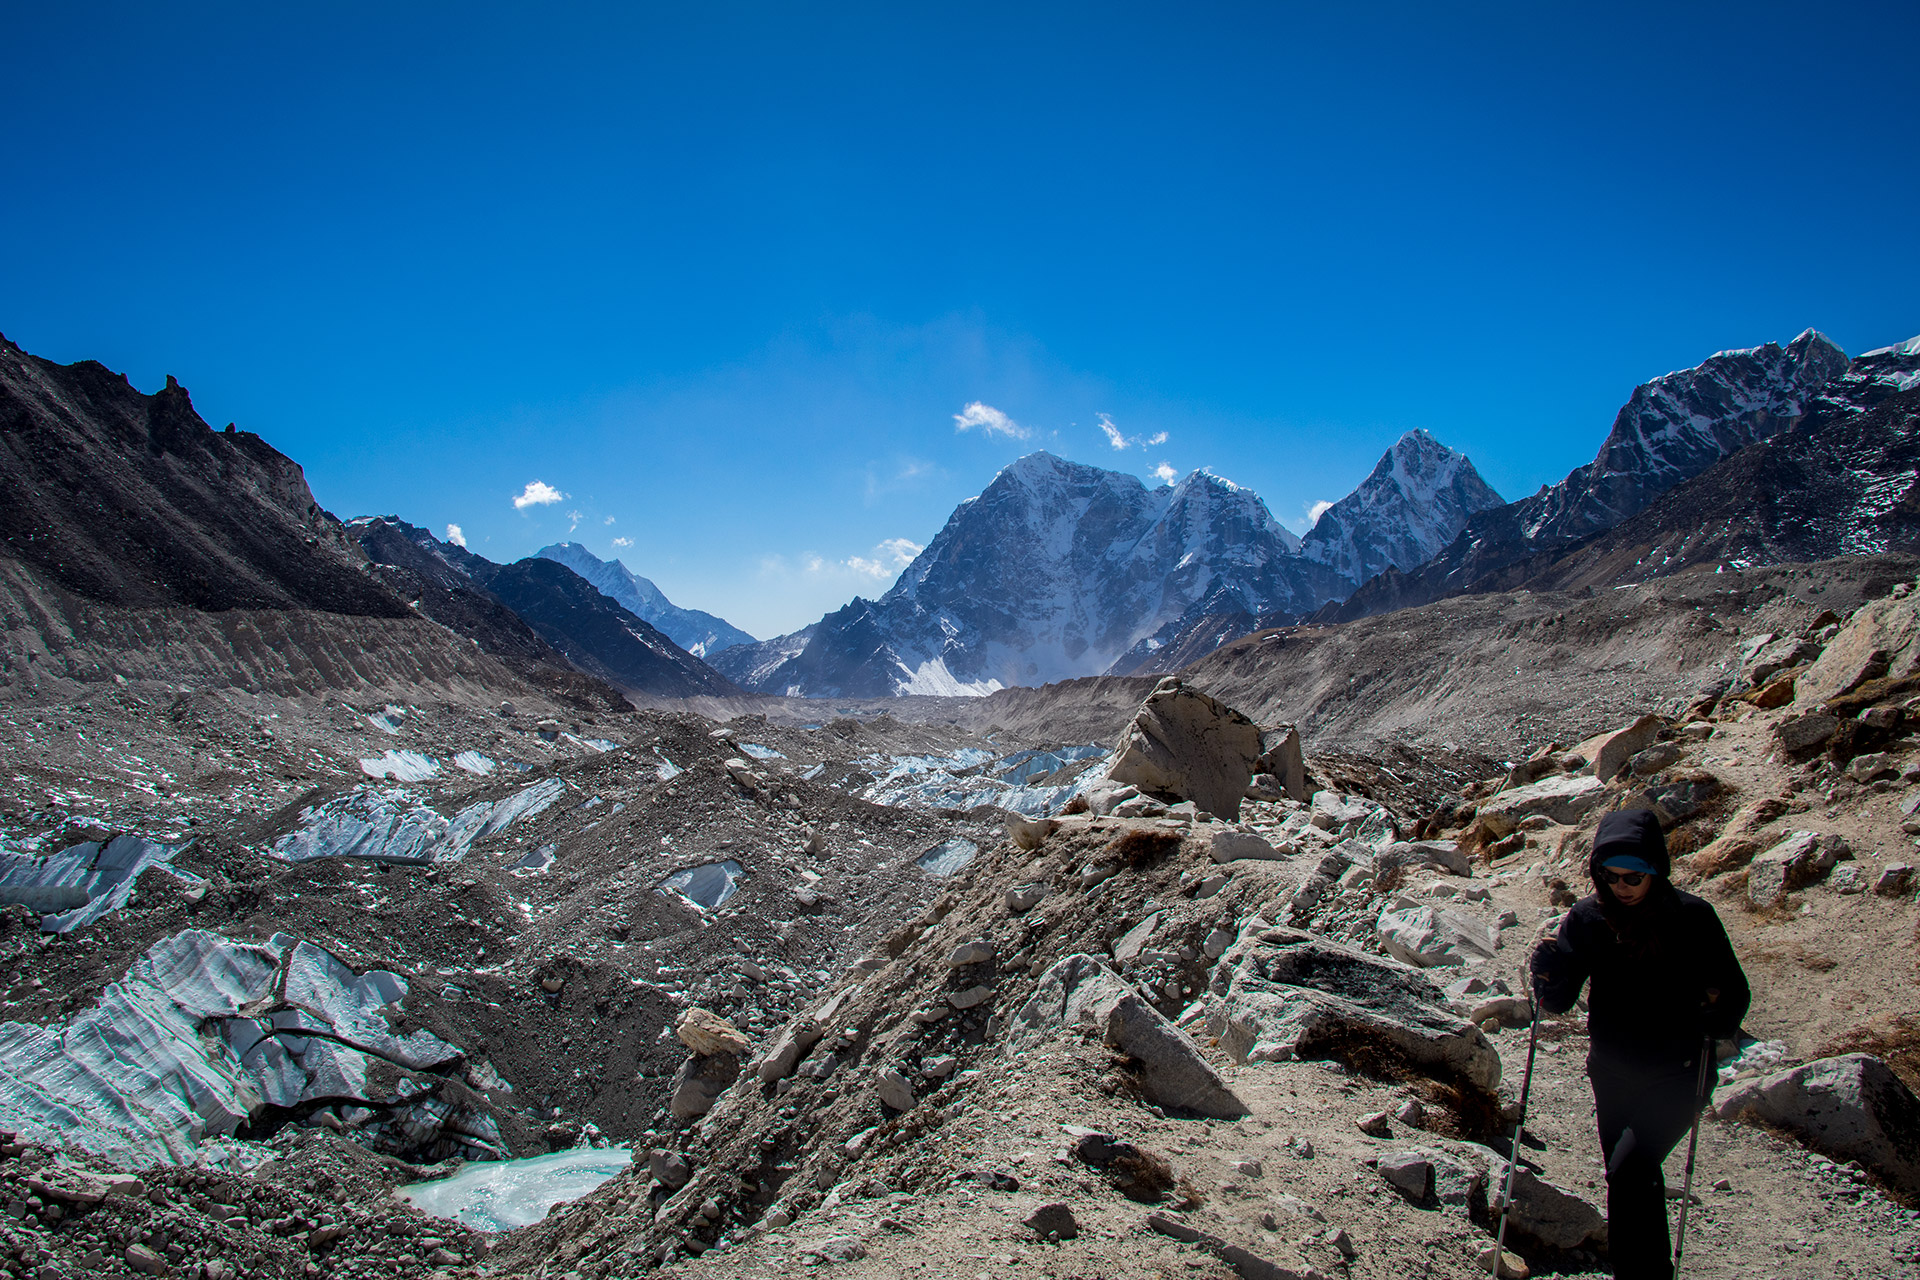 Mountains and Khumbu glacier